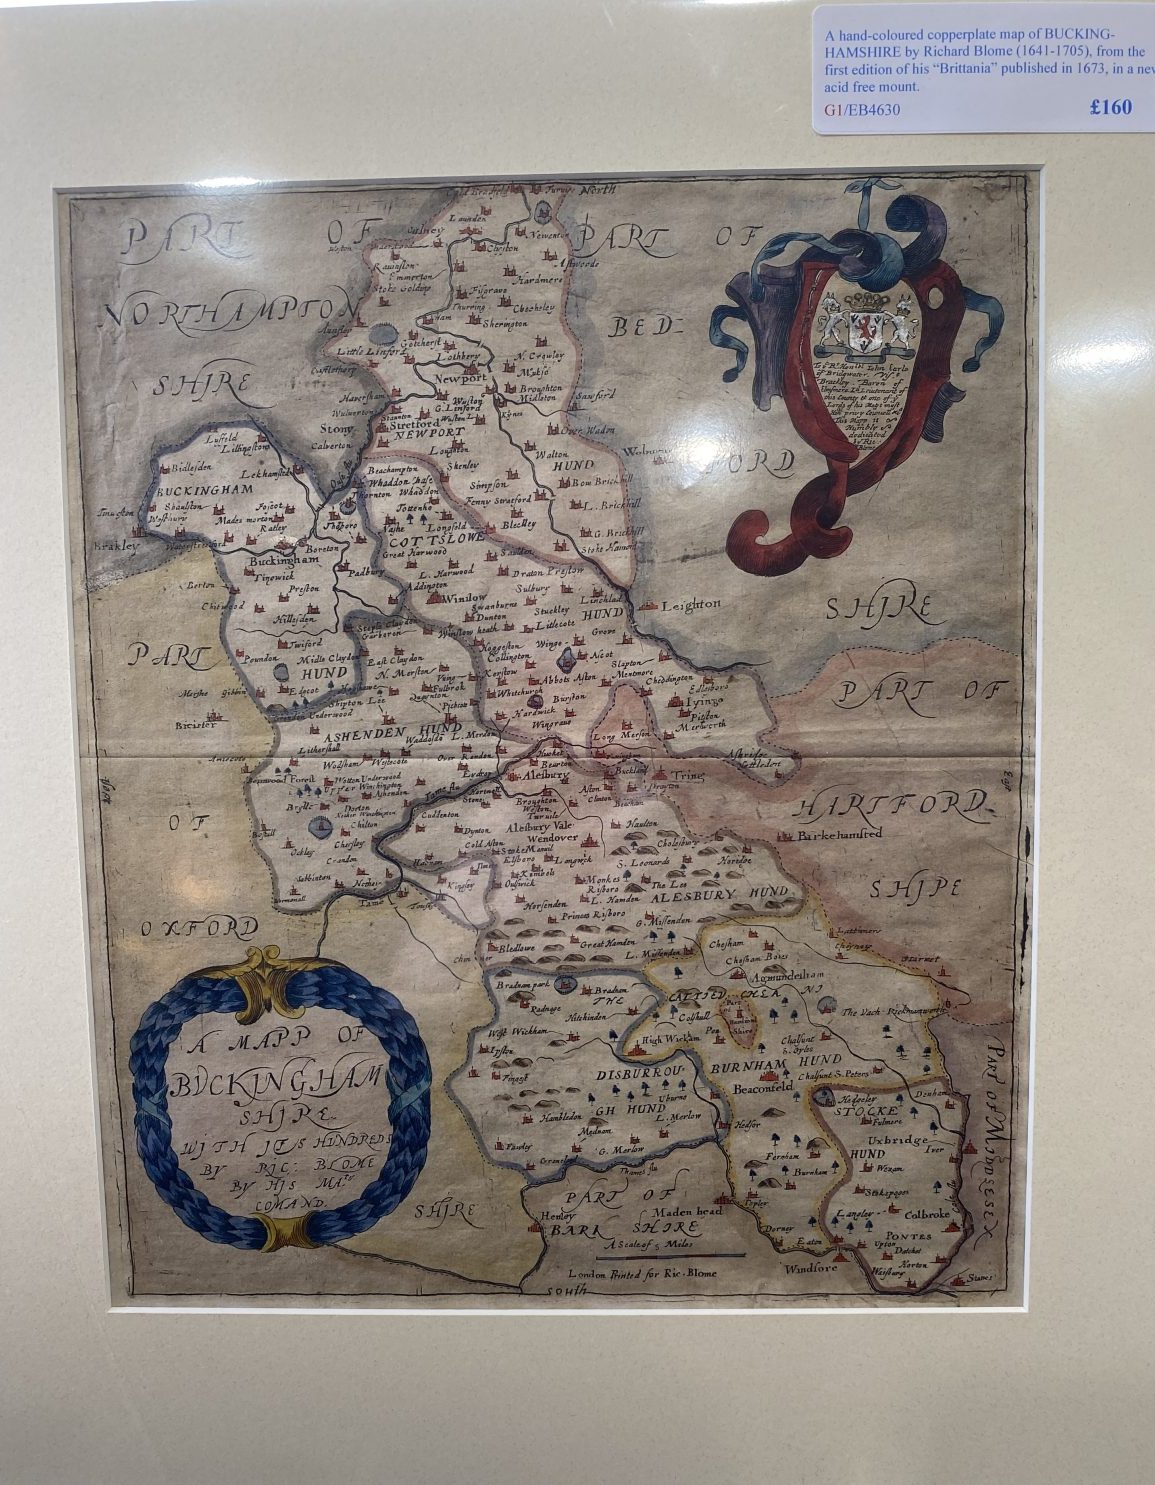 G1 - A hand-coloured copperplate map of BUCKINGHAMSHIRE by Richard Blome (1641-1705) from his Britannia of 1673. In a new acid free mount ready for framing.  £160